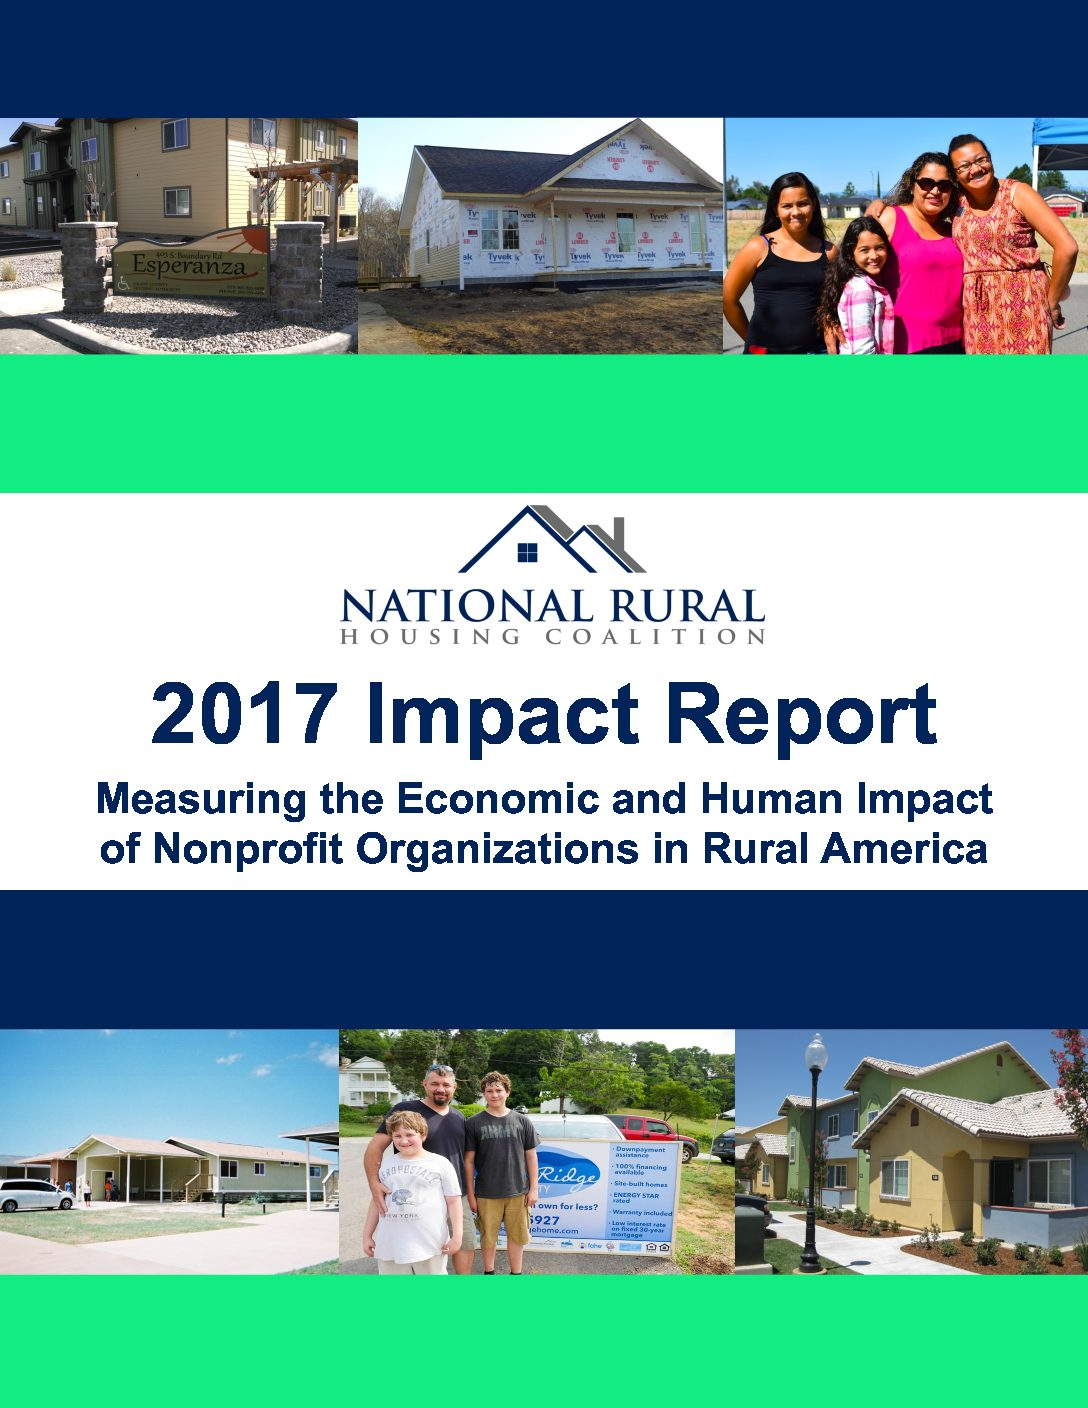 2017 Impact Report - Measuring the Economic and Human Impact of Nonprofit Organizations in Rural America